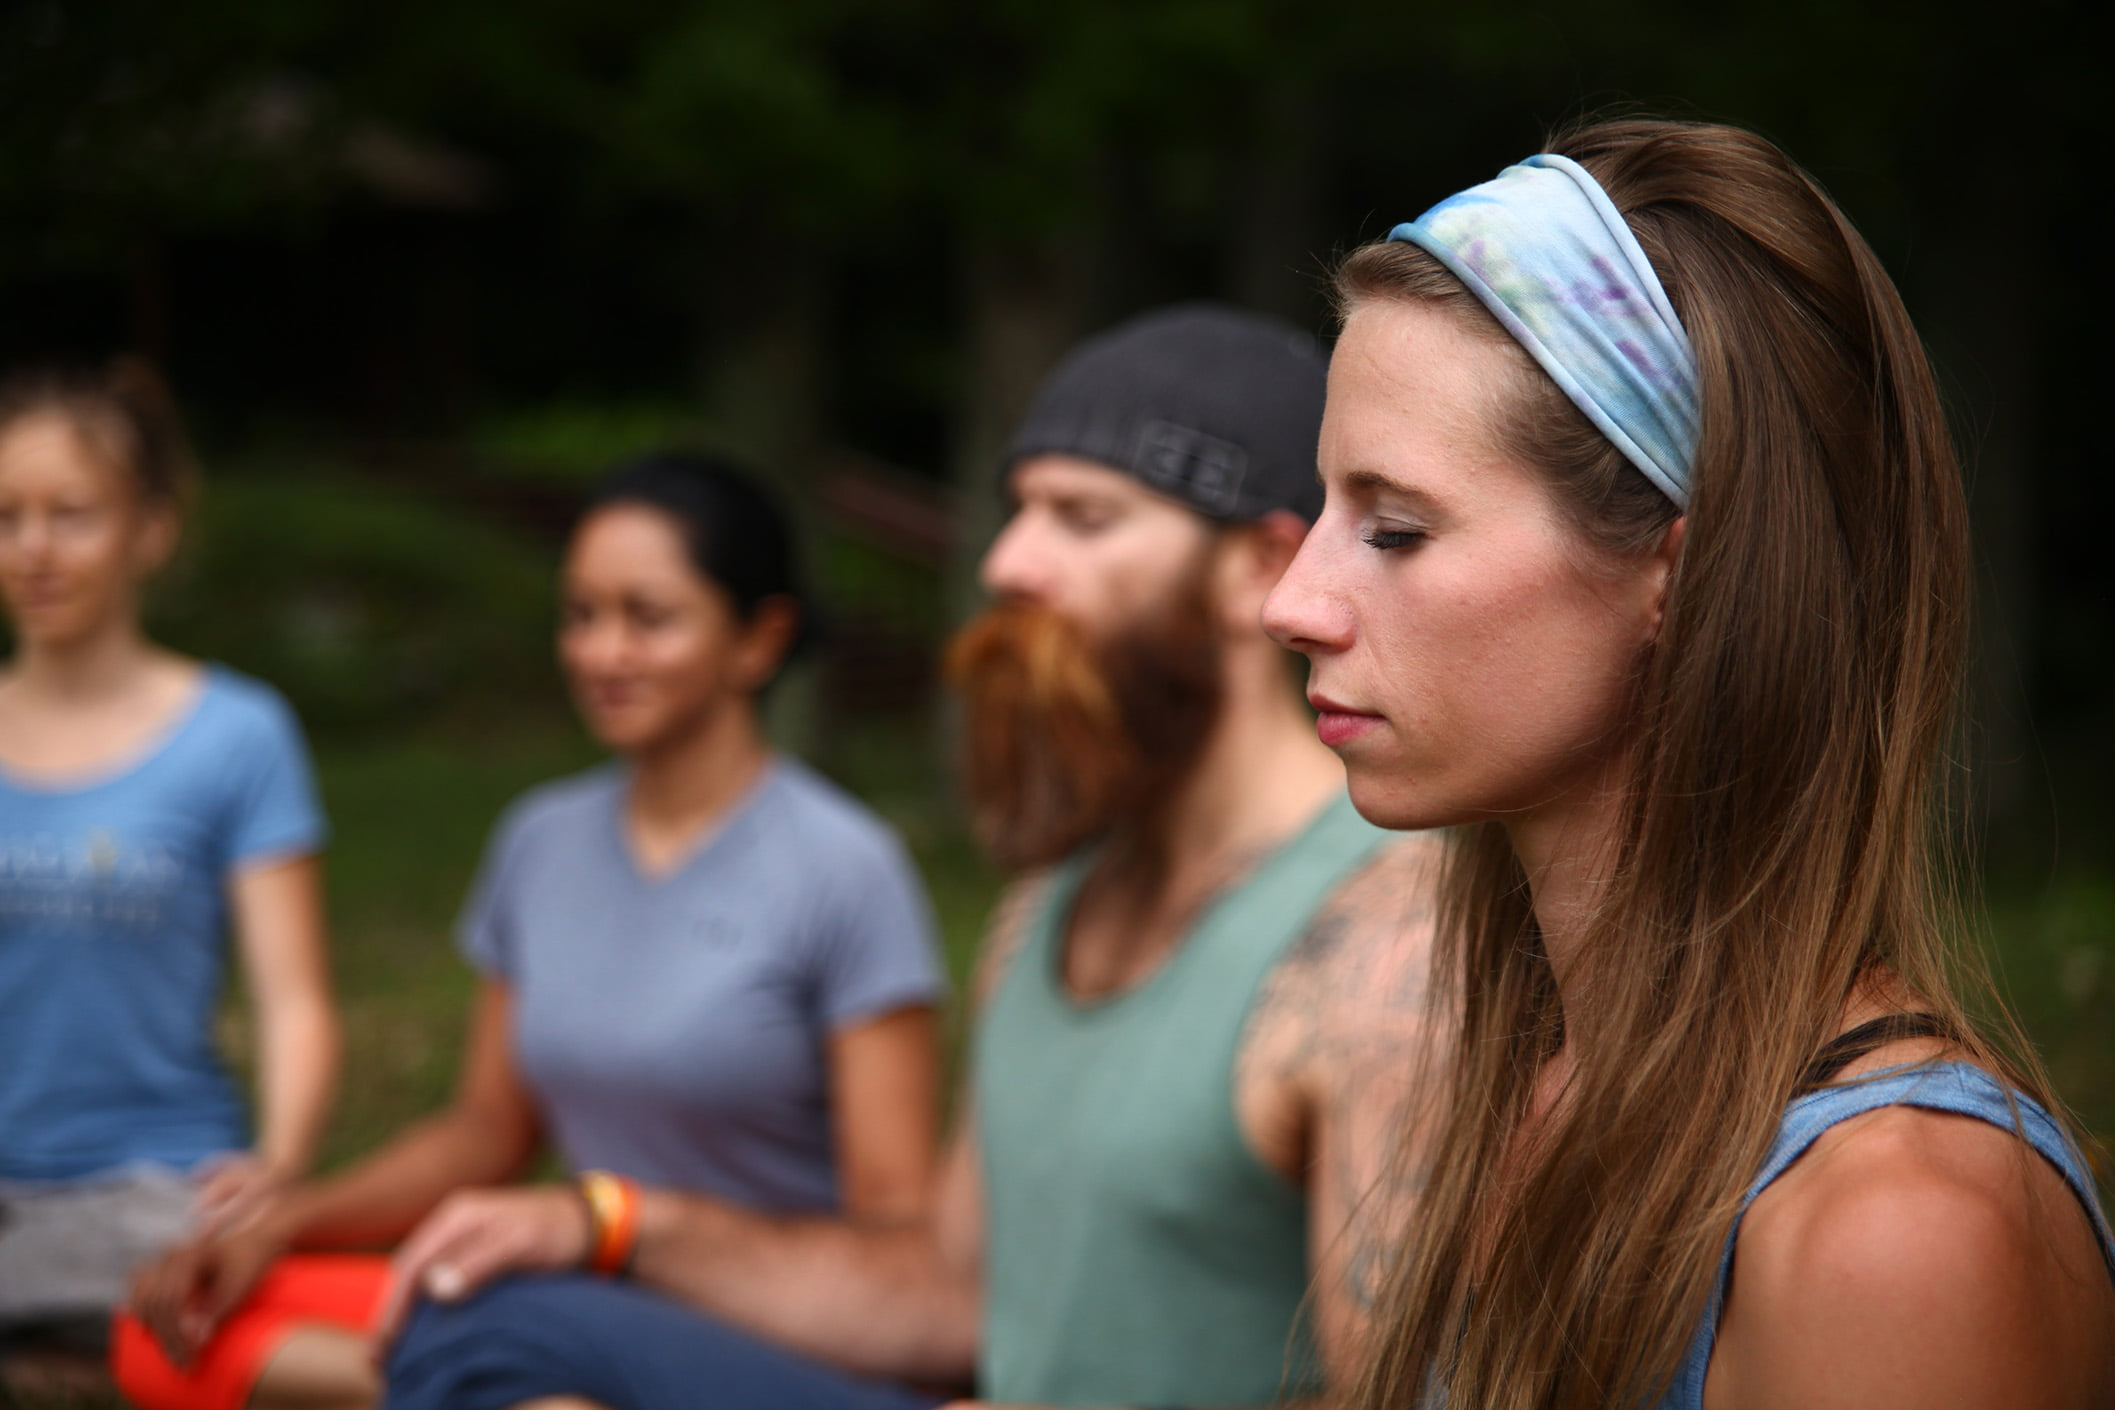 Yoga Nonprofit Seeks to Change the World With 1,000,008 Hours of Meditation